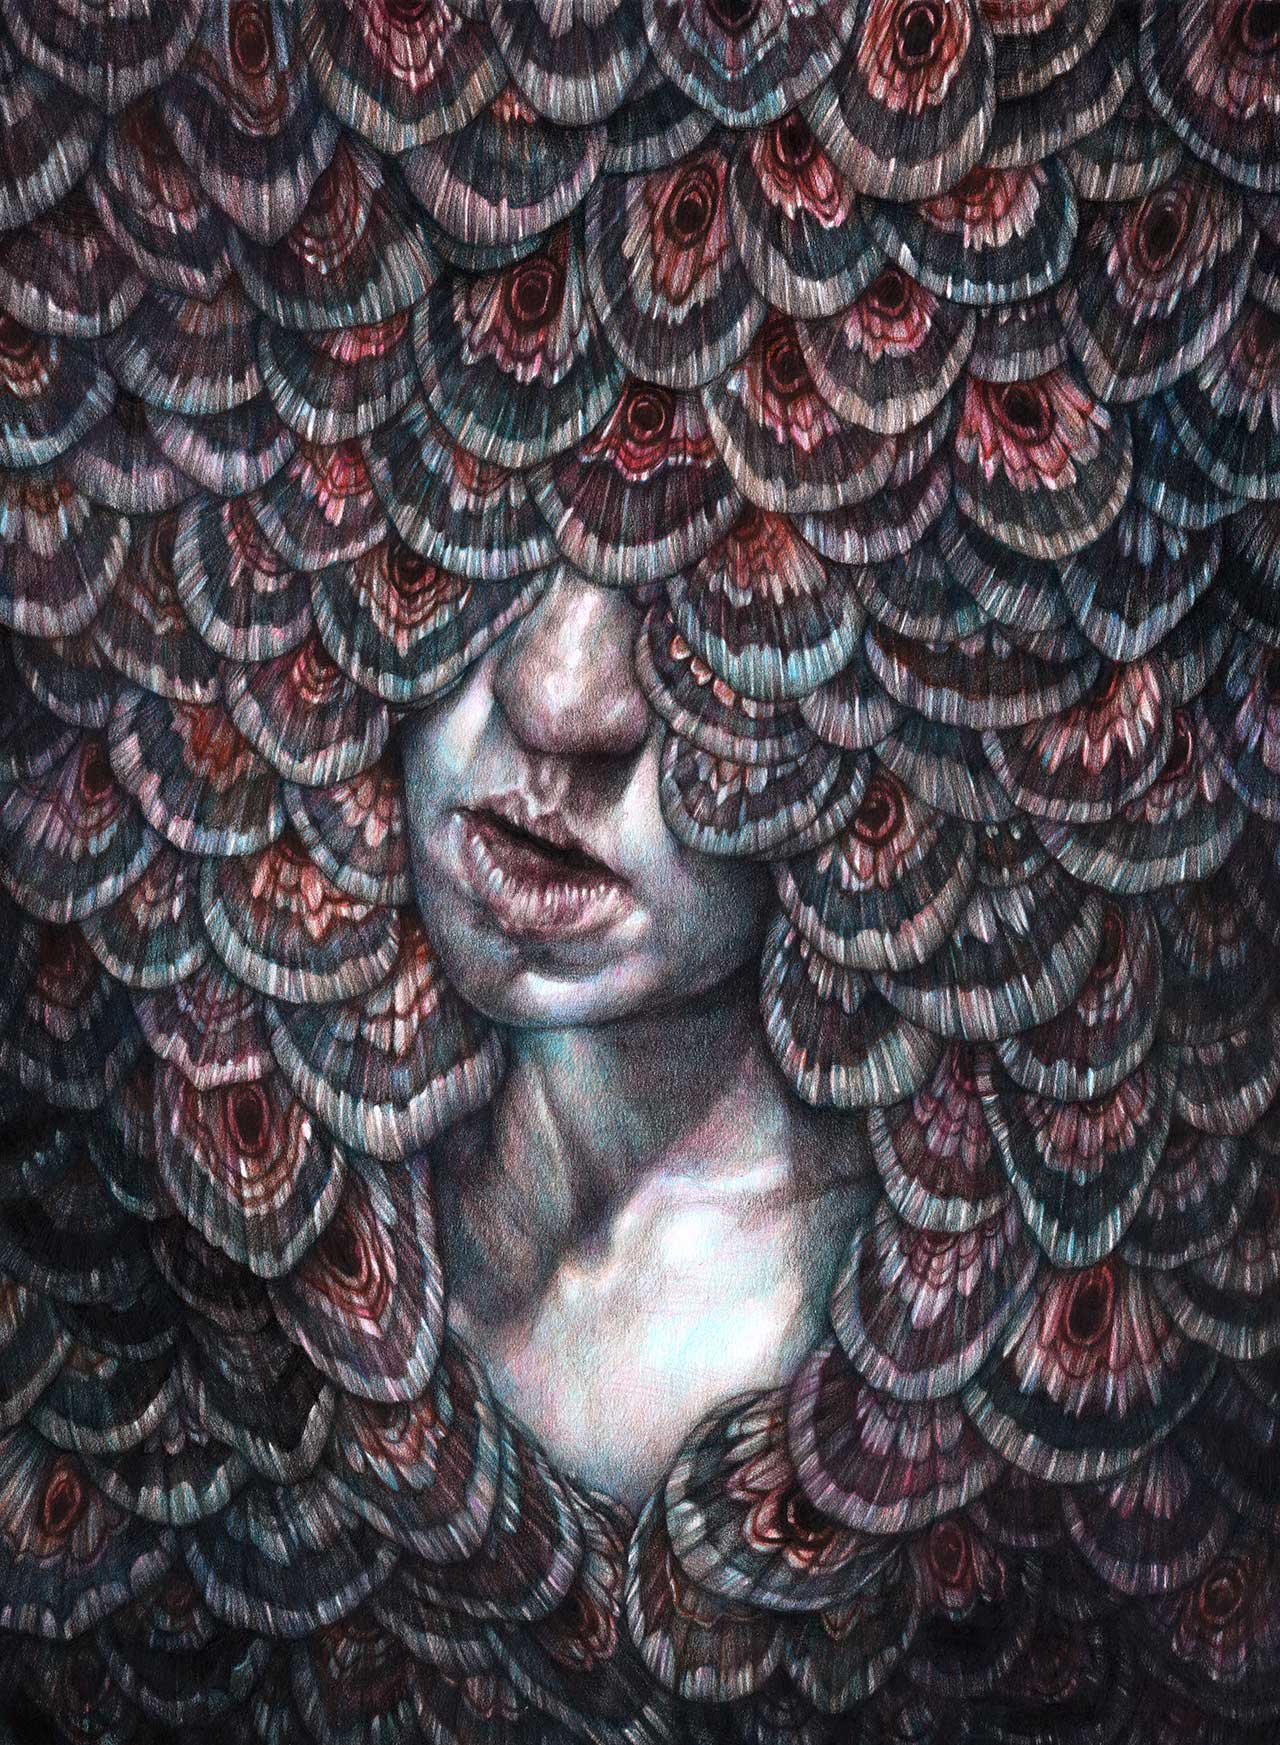 Marco Mazzoni, Dance/Weep/Dance, 2016. Colored pencils on paper, 40 x 30cm © Marco Mazzoni.